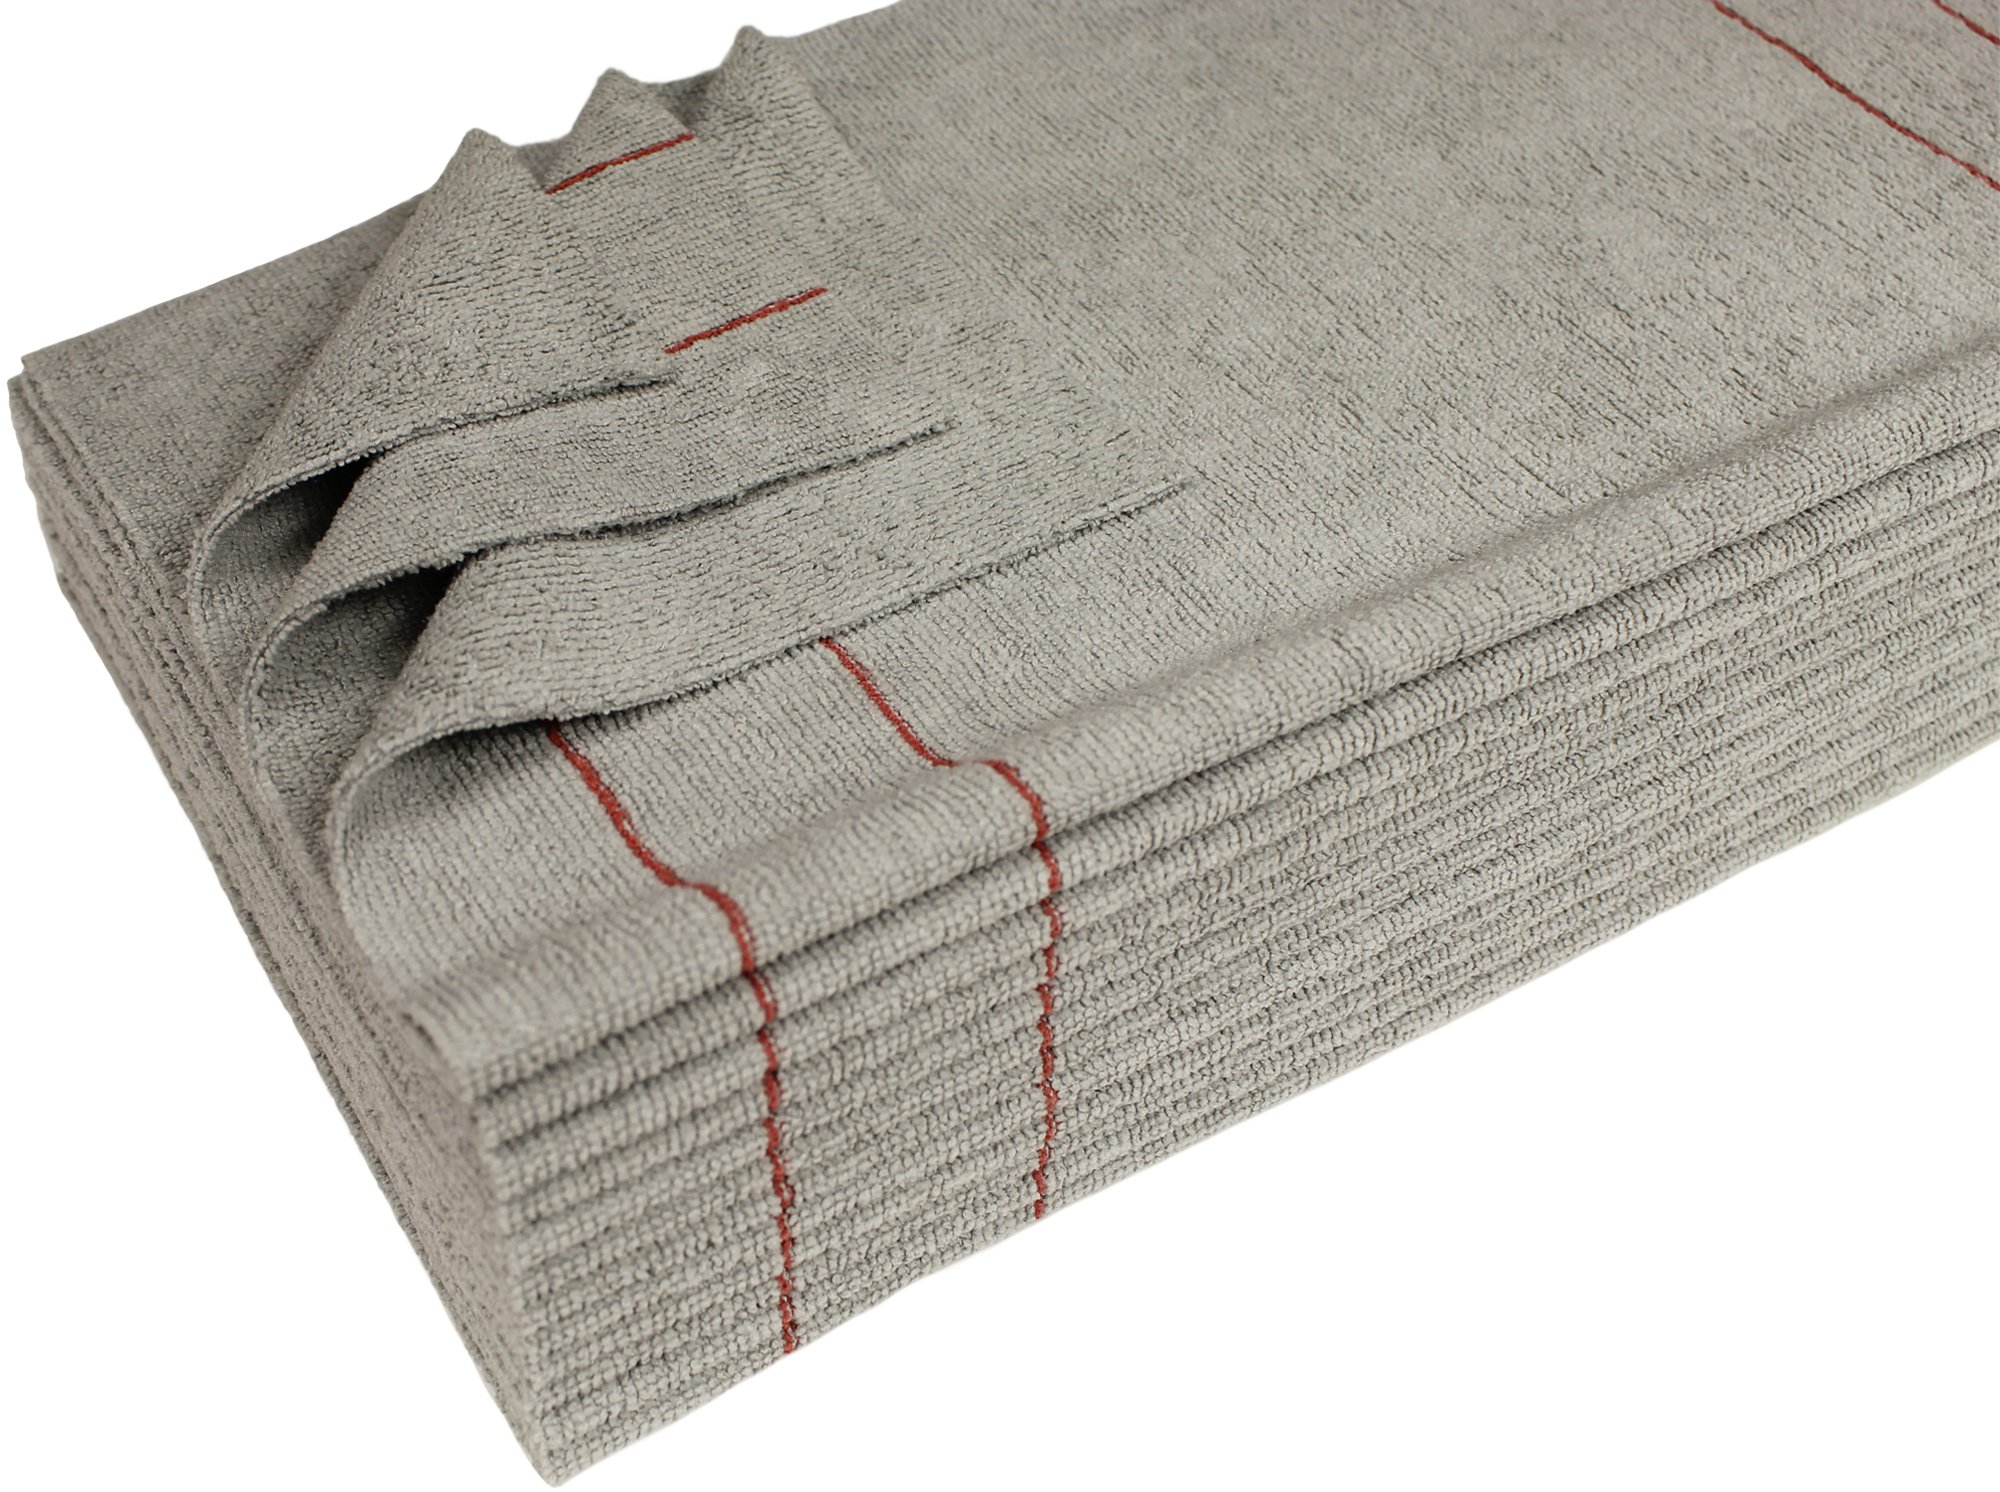 CleanAide Antimicrobial Silver Towels Ultra Cut 16 X 16 in. Red Pin 12 Pk by CleanAide (Image #6)